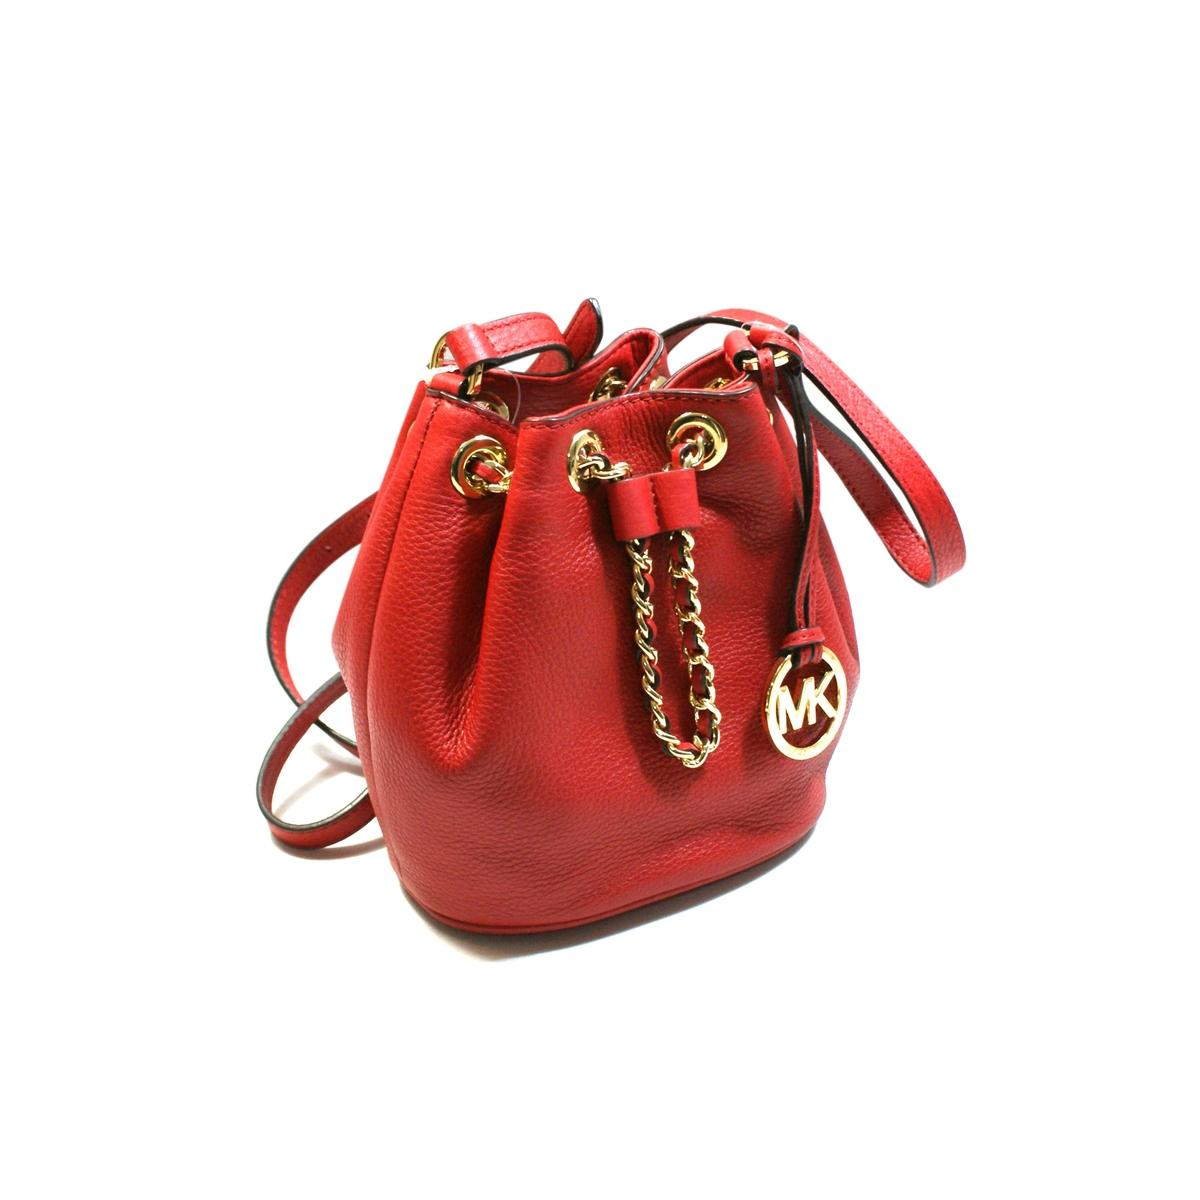 Shop online for women's designer handbags at maump3.ml Browse our selection of Gucci, Saint Laurent, Prada and more plus check out customer reviews.